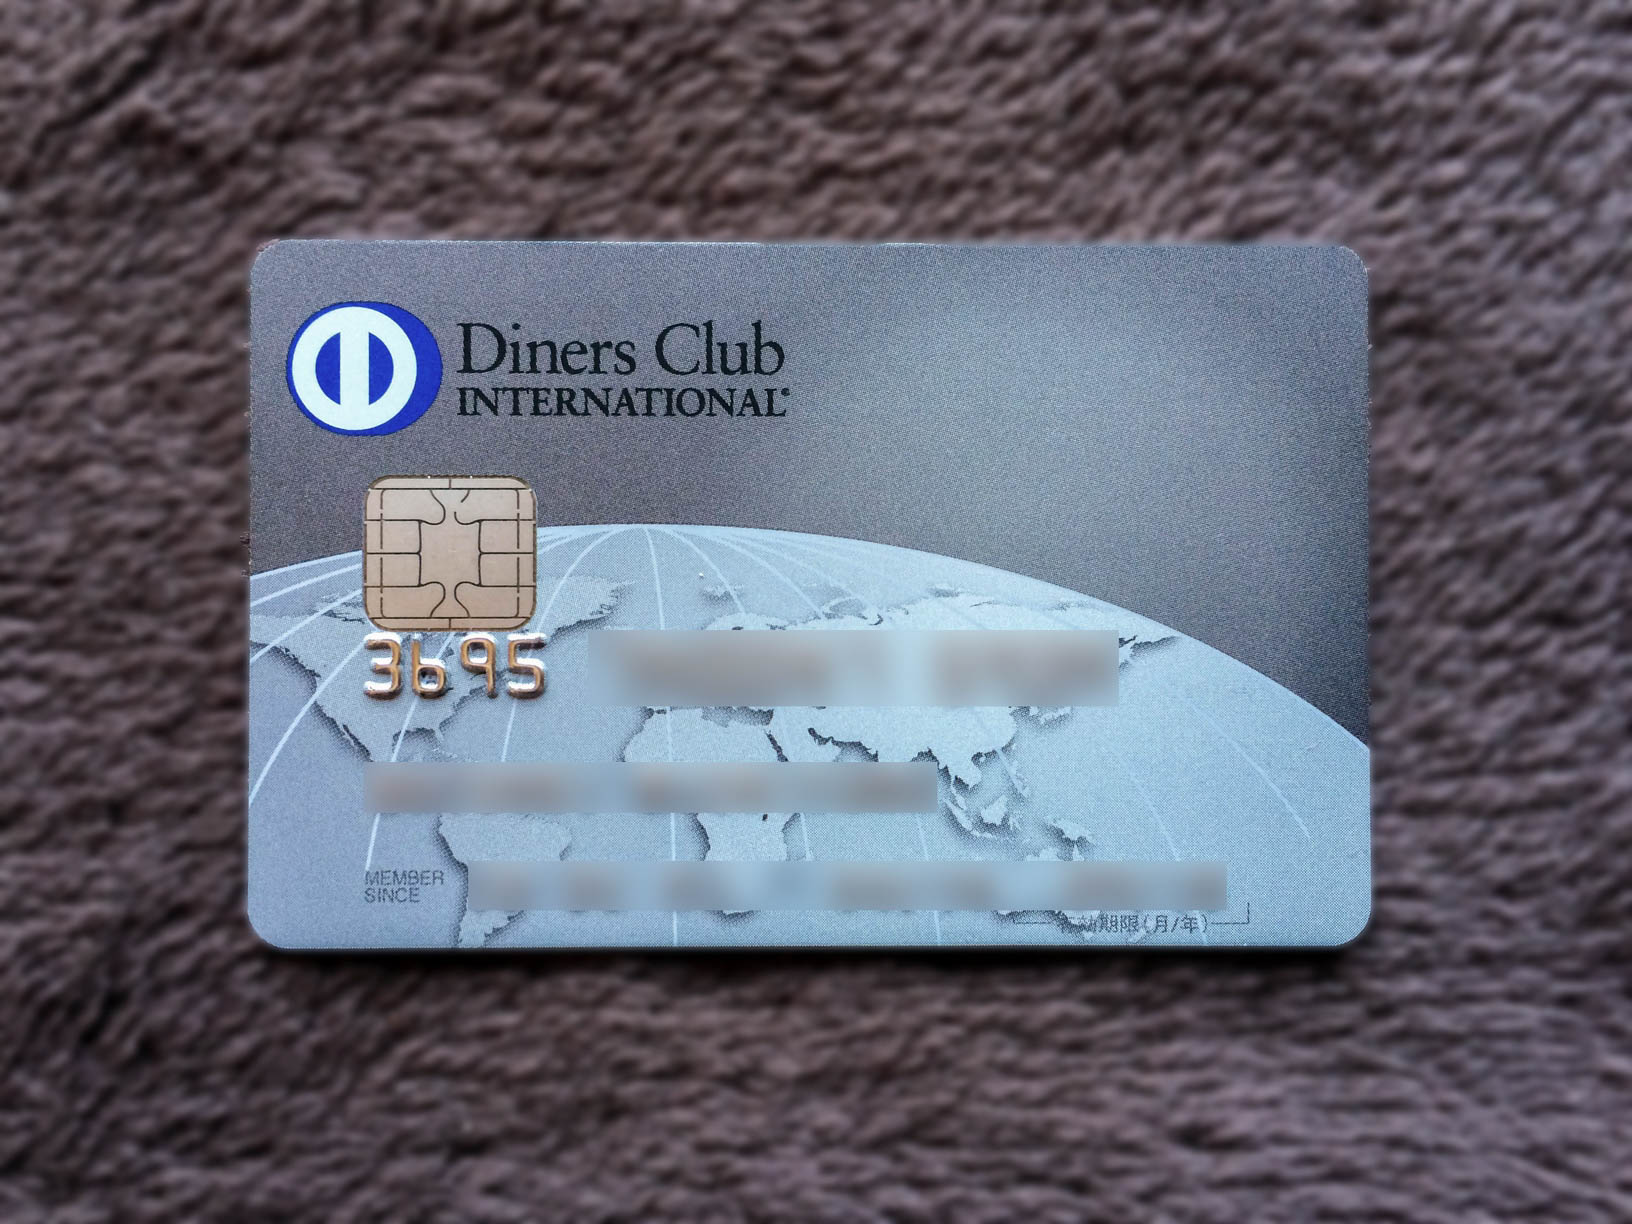 New Diners Club Card 201606